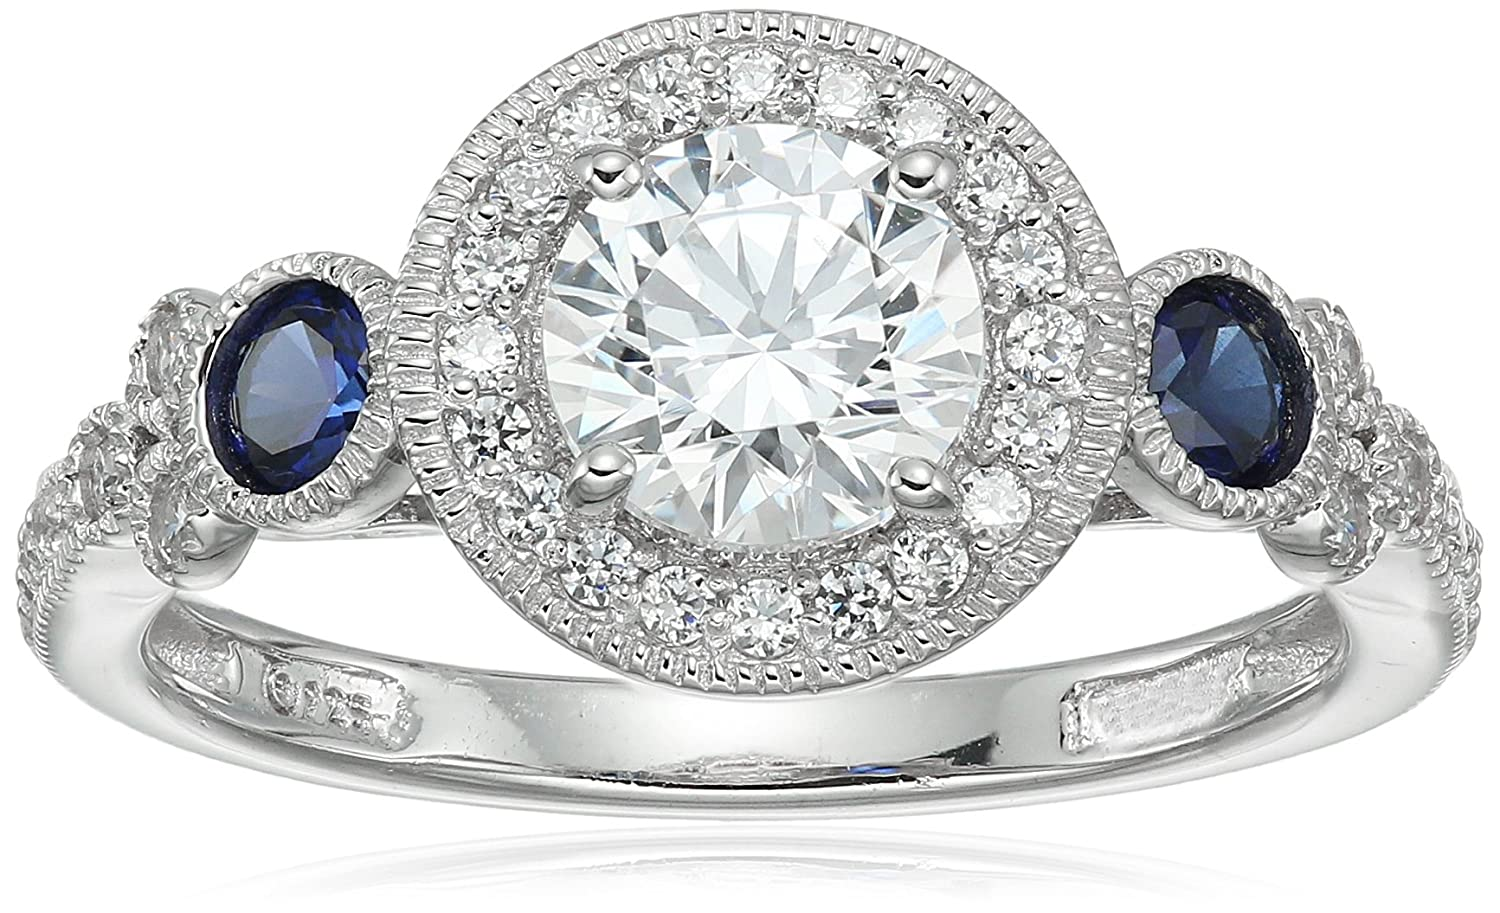 Platinum-Plated Sterling Silver Swarovski Zirconia Antique Round-Cut and Created Sapphire Ring Amazon Collection R3202602_120_050-Parent